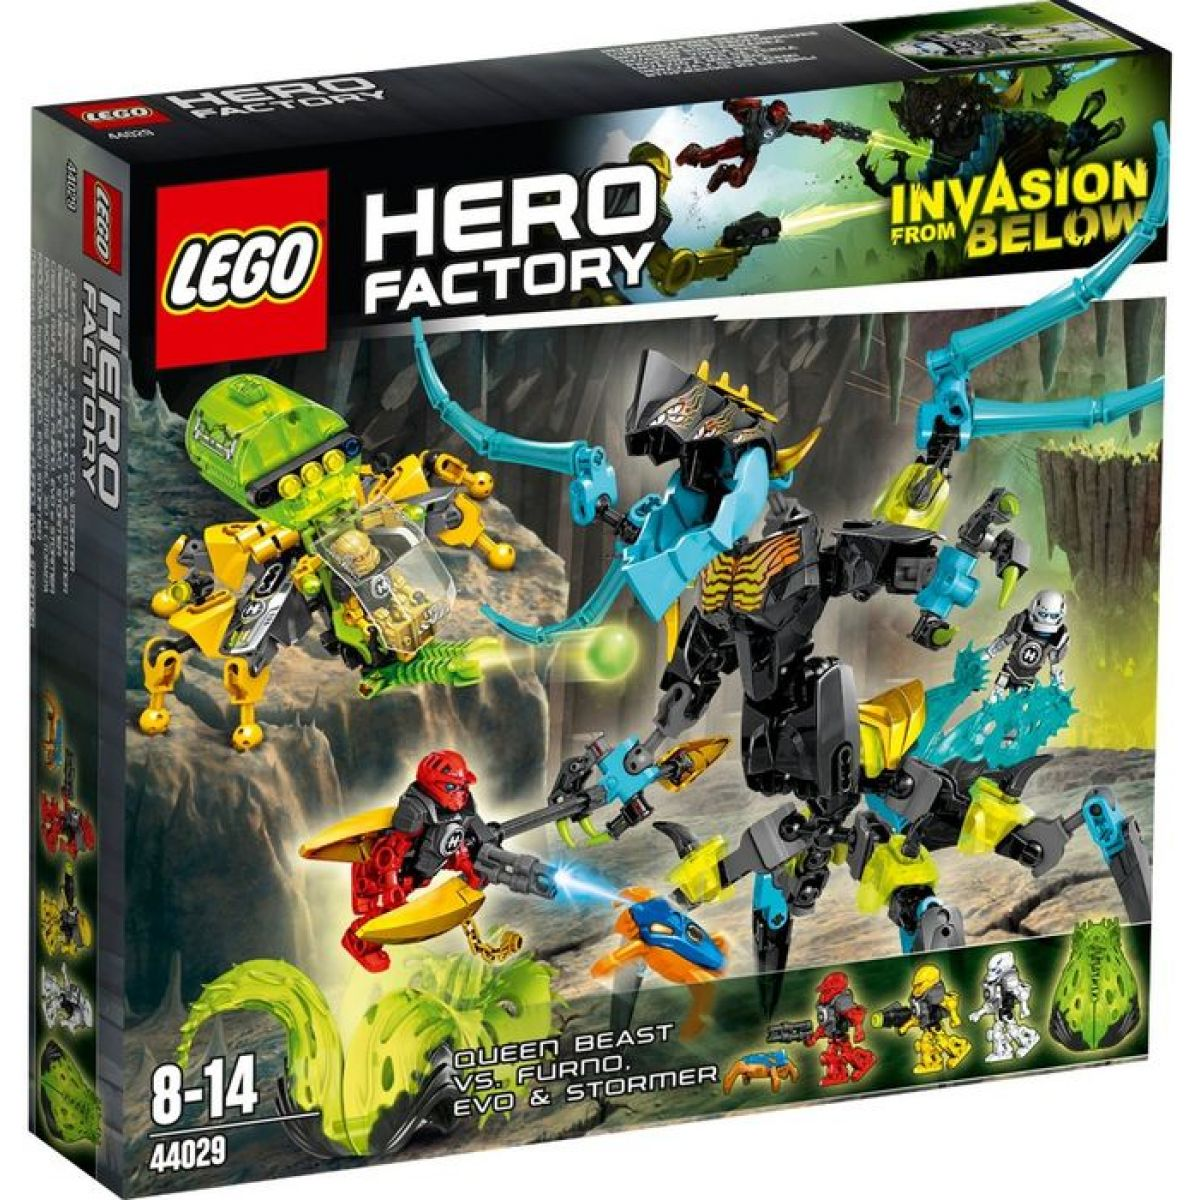 LEGO Hero Factory 44029 Královna Monster vs. Furno, Evo a Storm